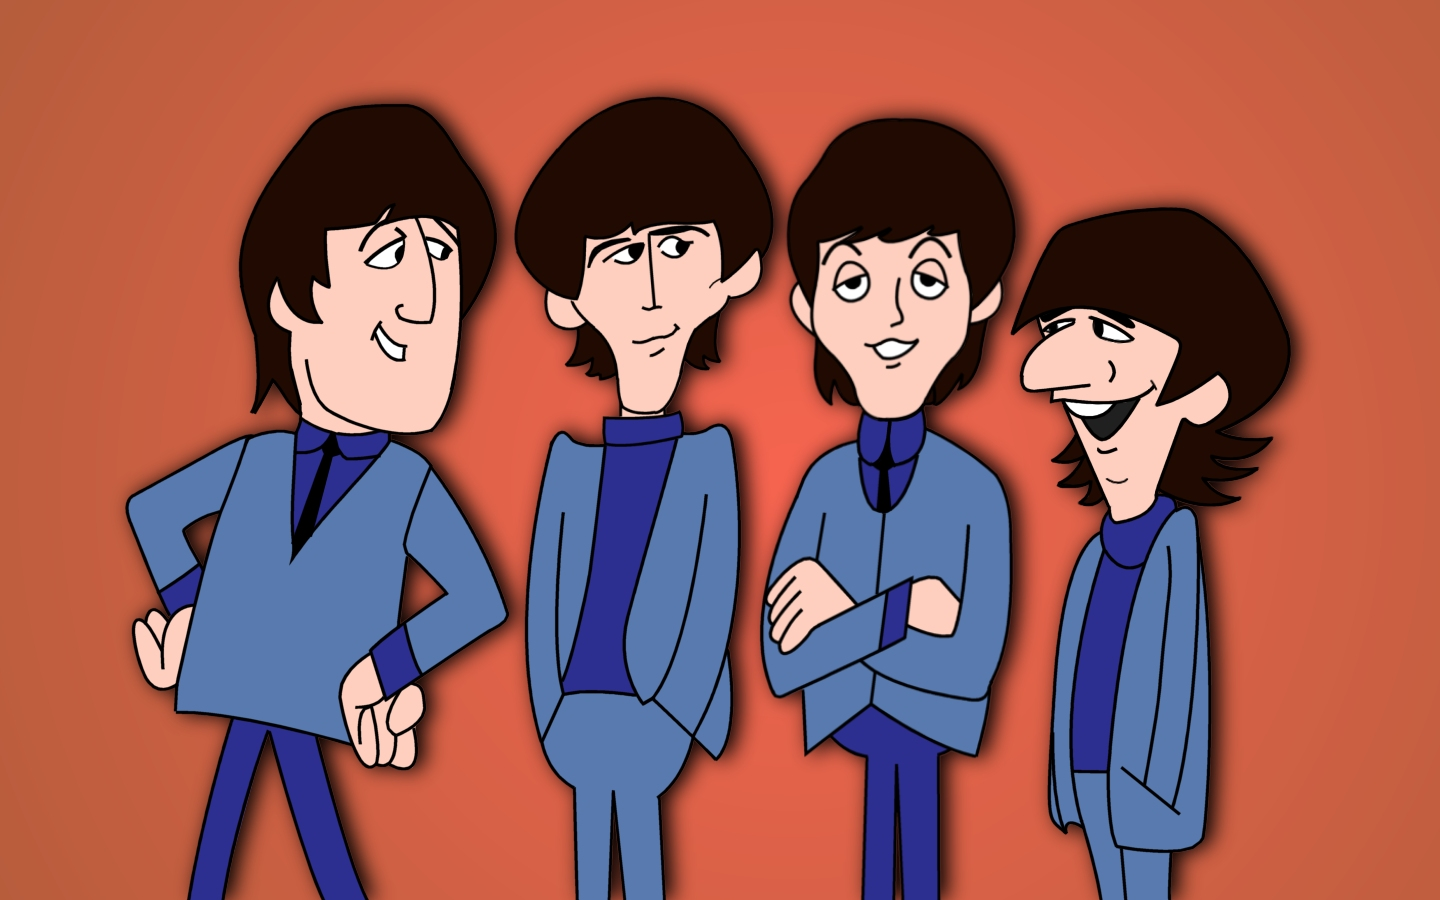 Beatles-Cartoon-Series-1965.jpg